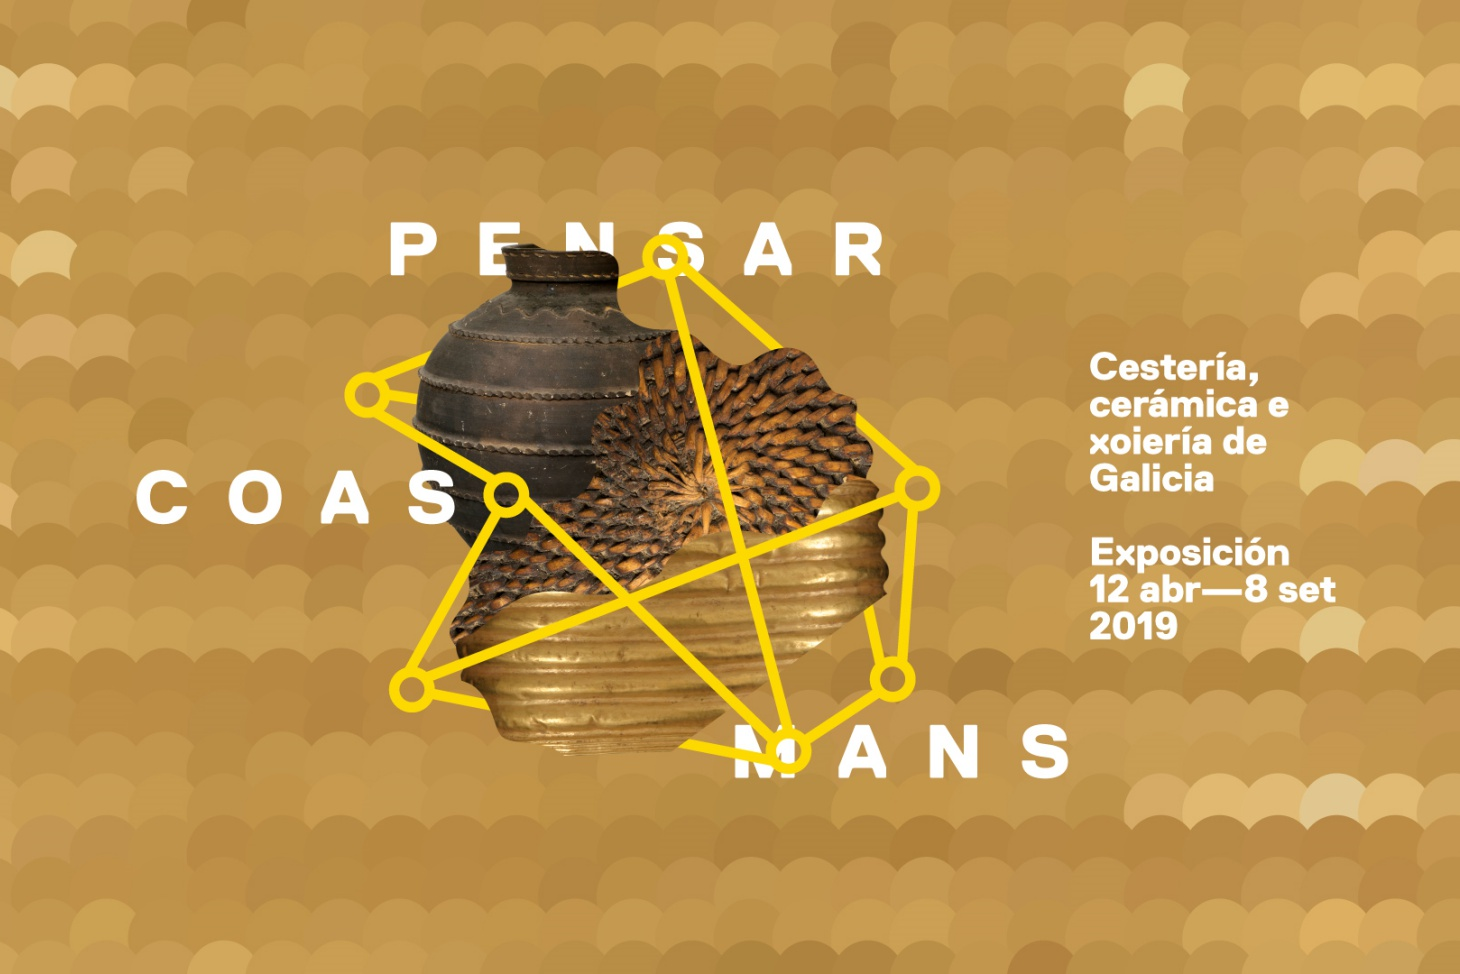 Pensar coas mans exhibition (thinking with hands)